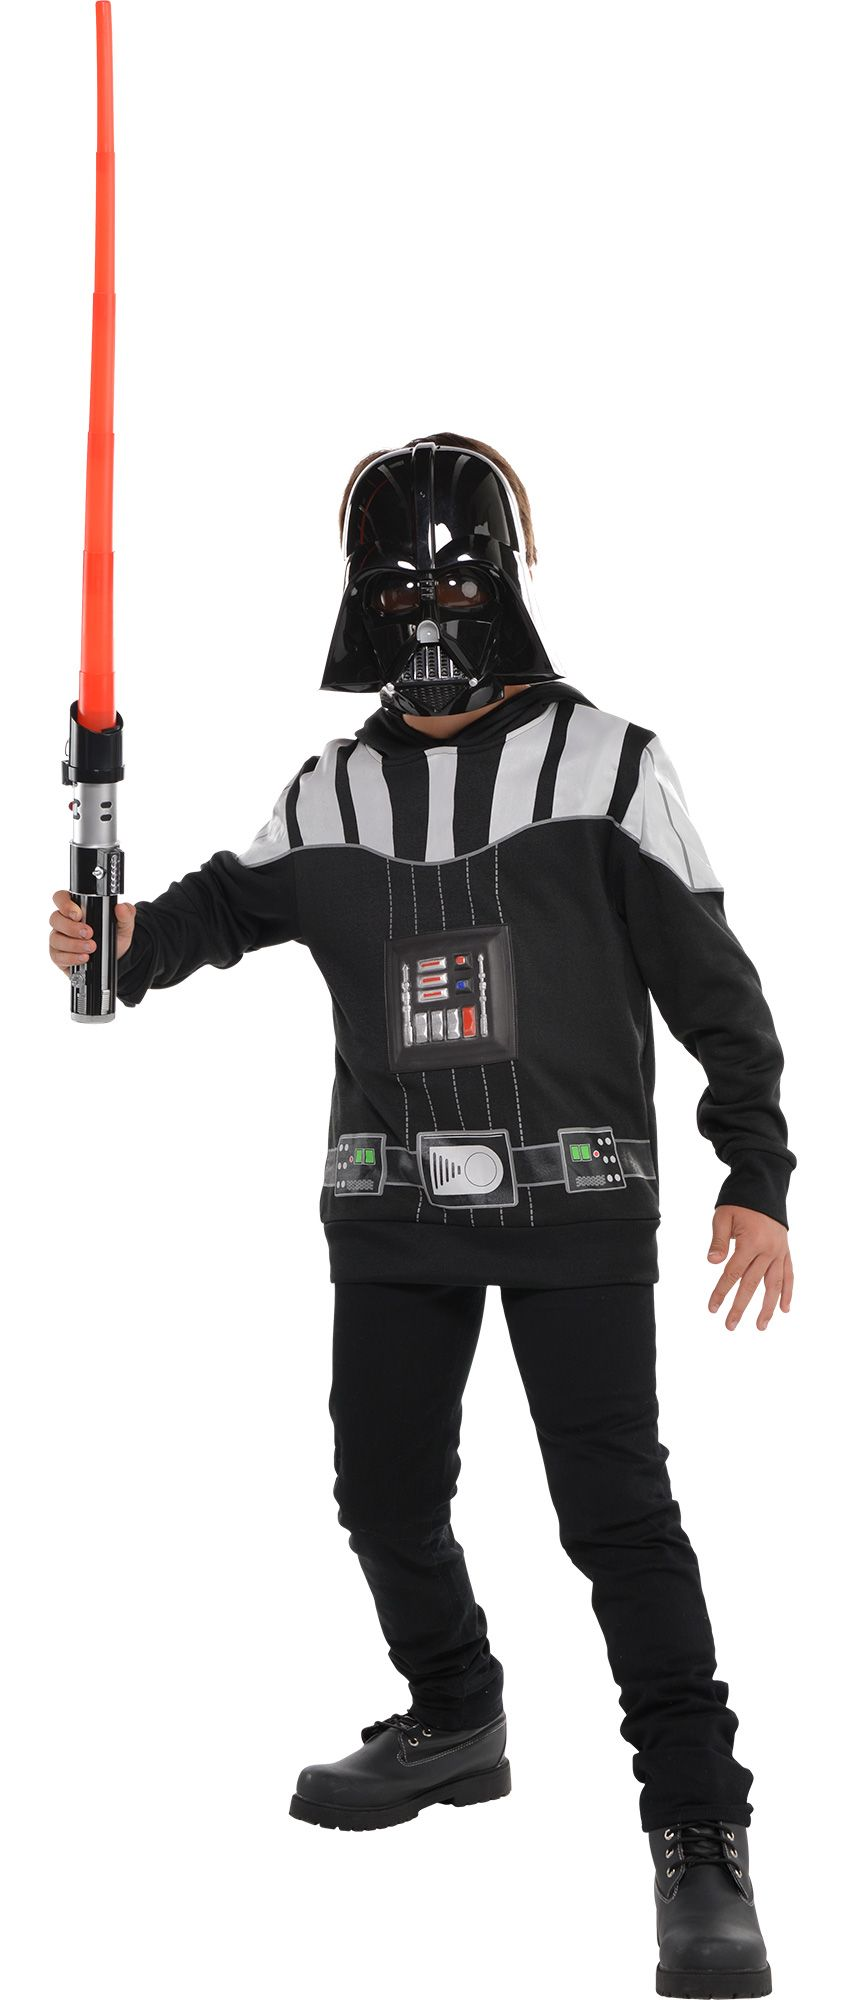 Make Your Costume - Boys Darth Vader